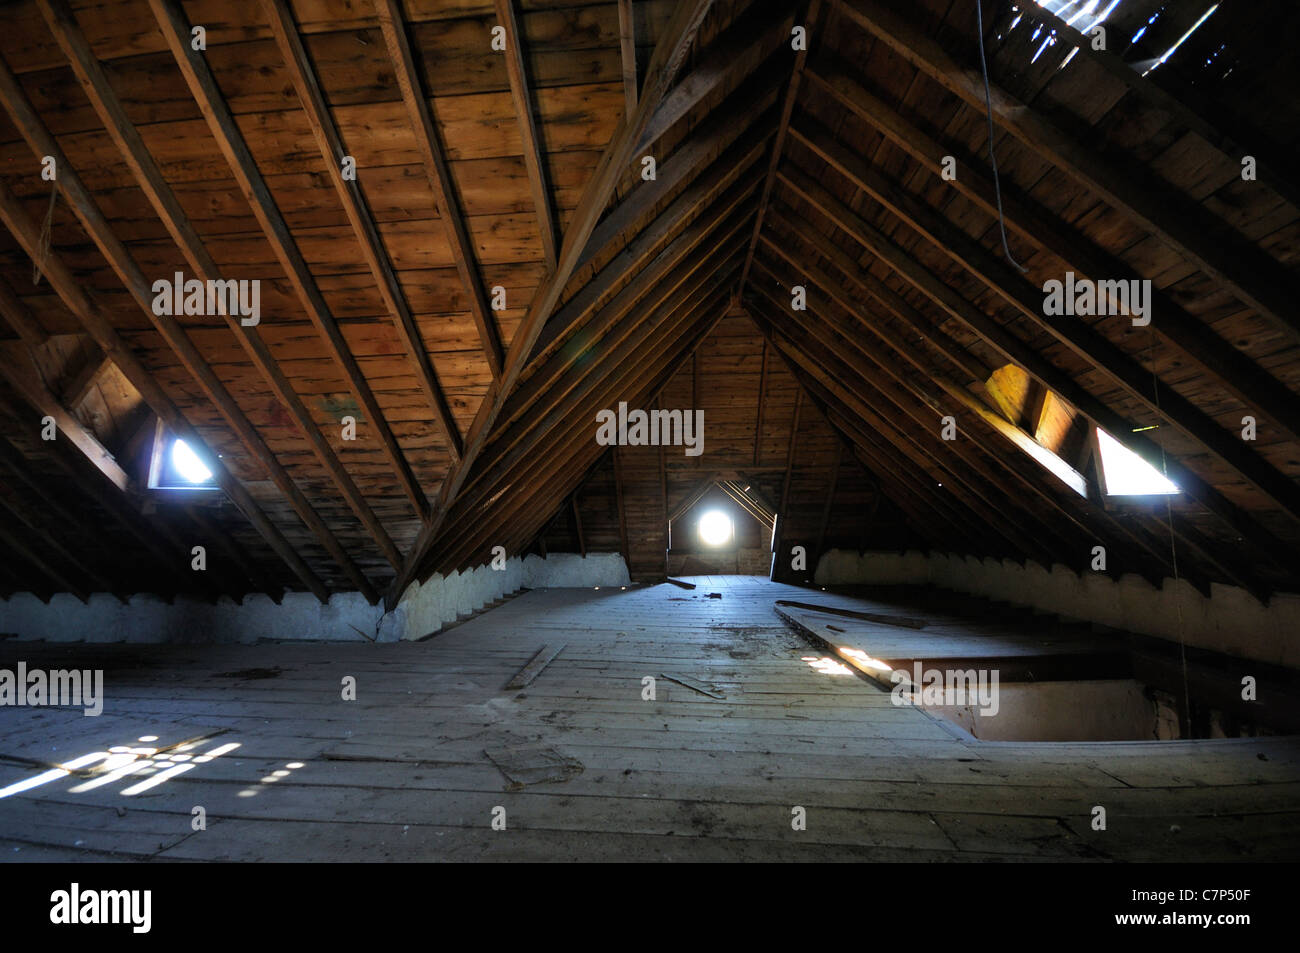 Inside of an old abandoned farm house in the middle of a